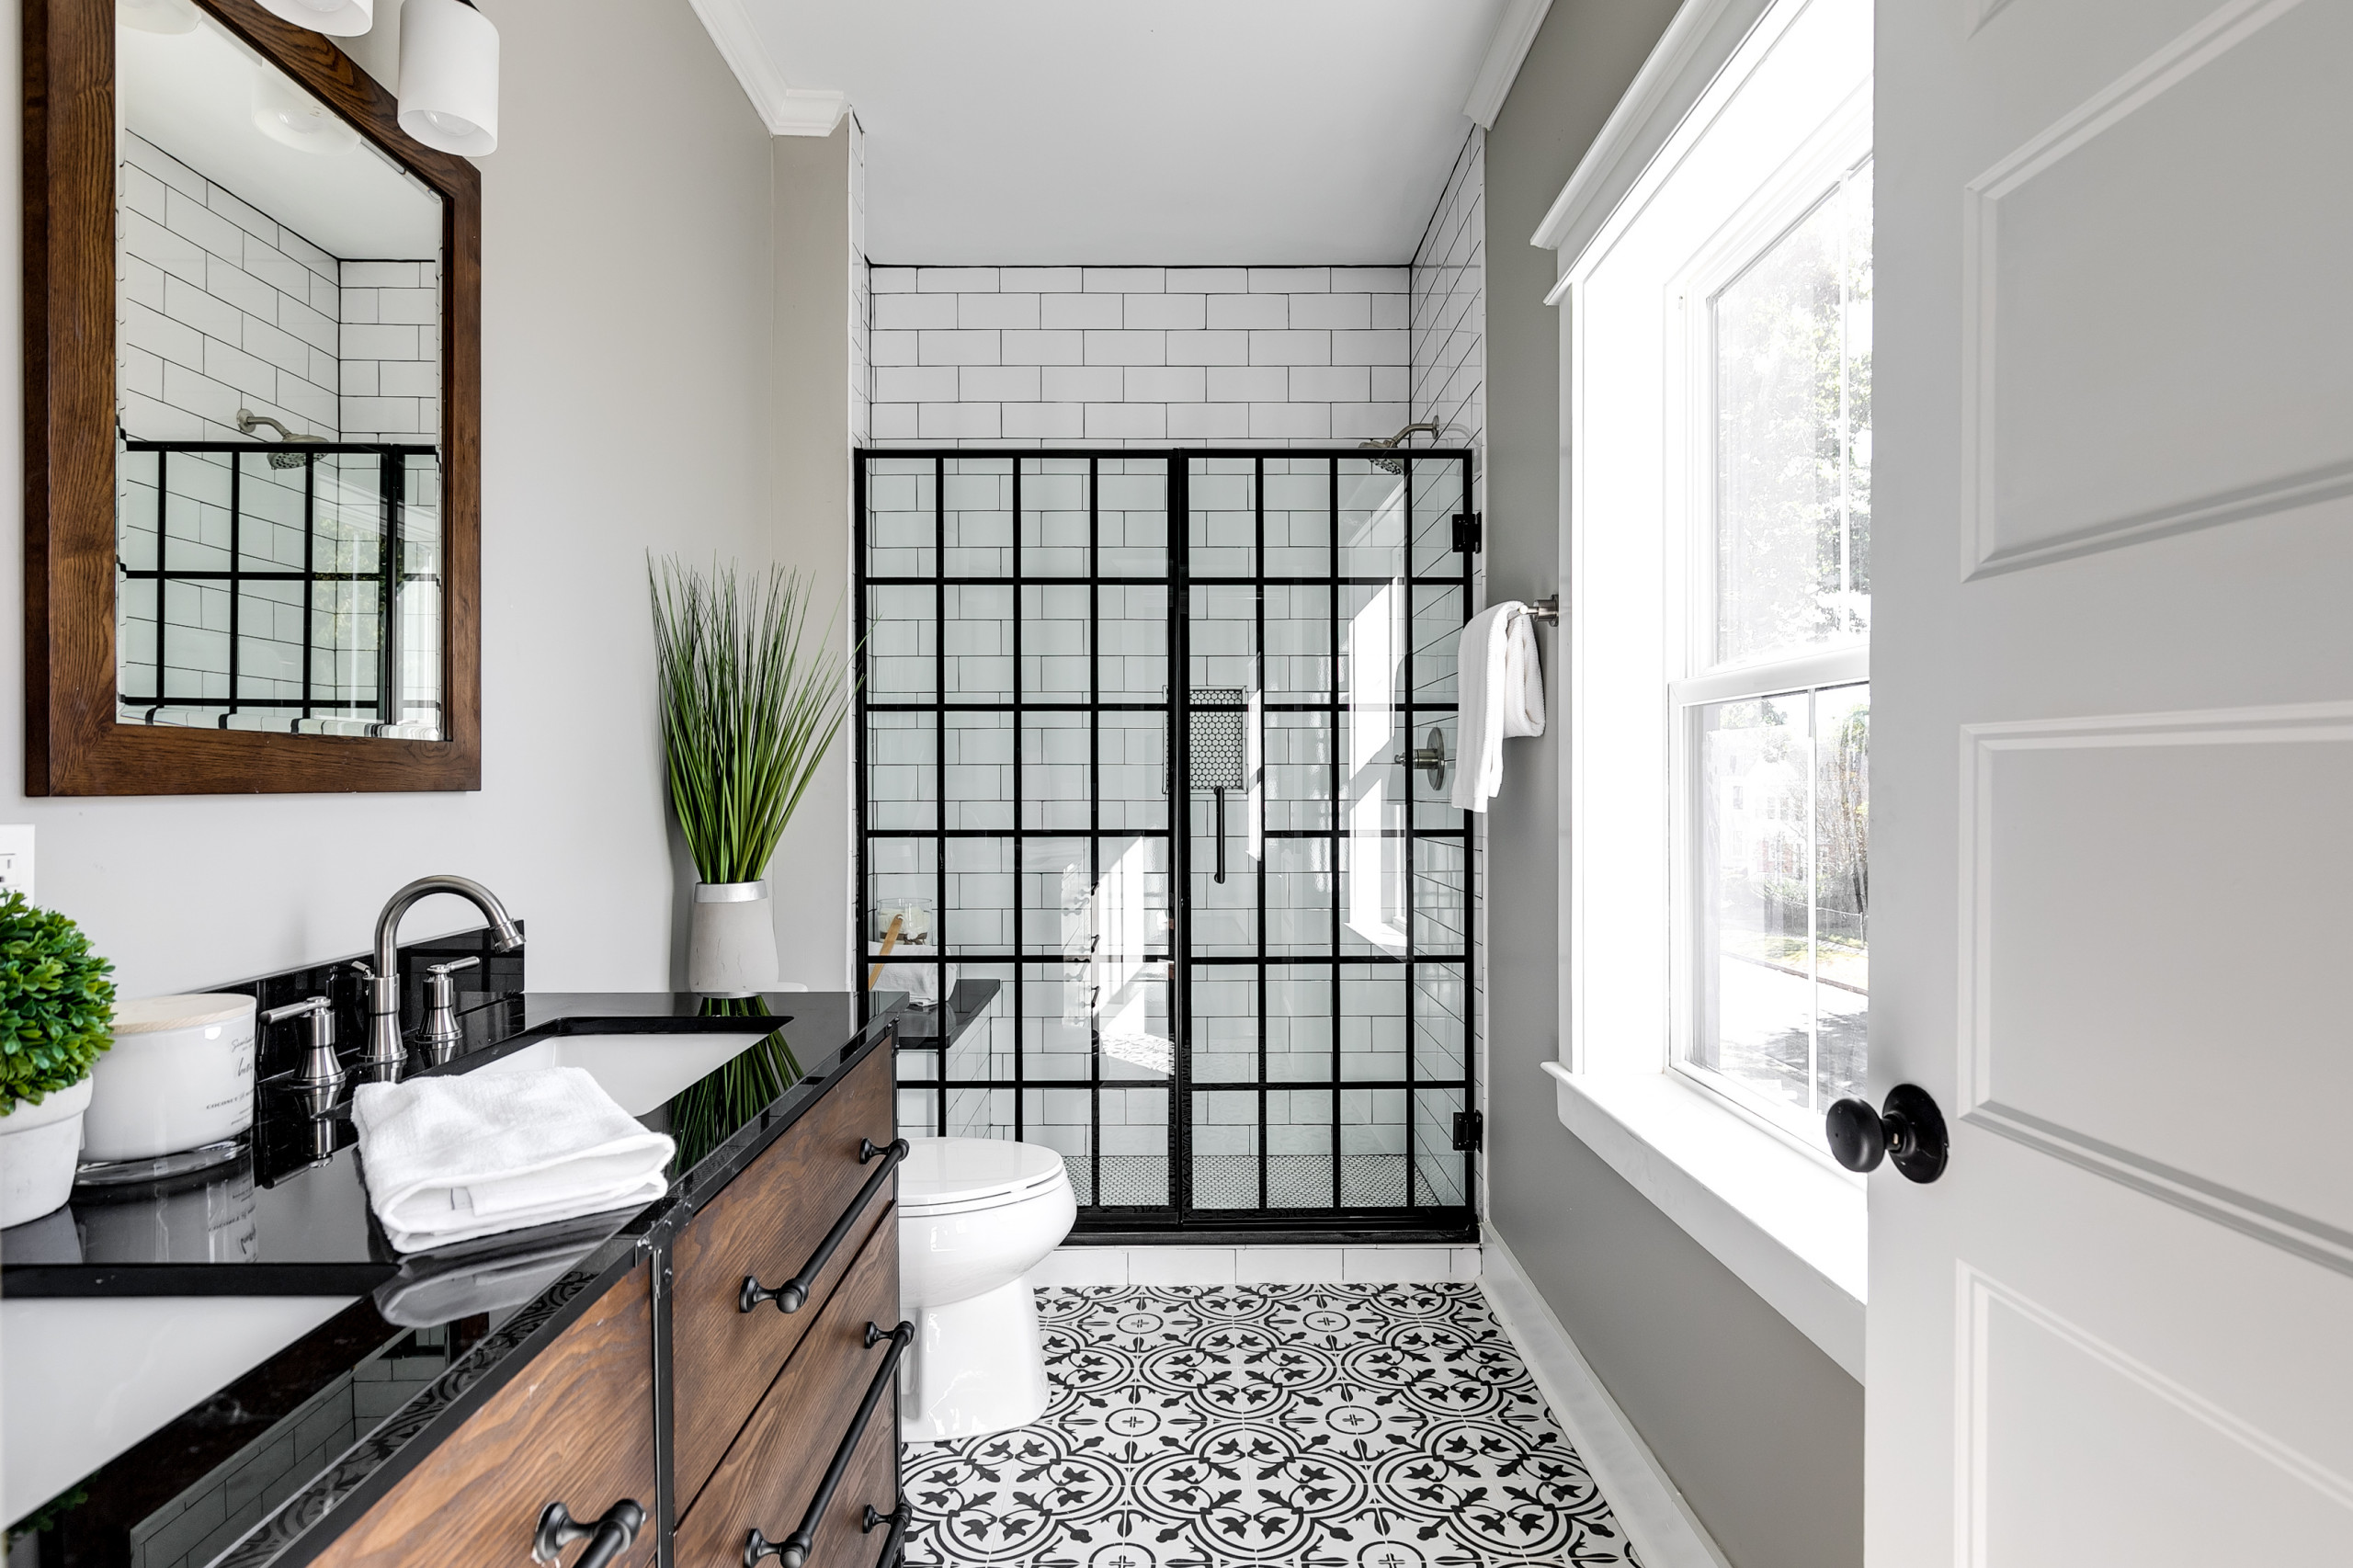 75 Beautiful Green Bathroom Pictures Ideas February 2021 Houzz